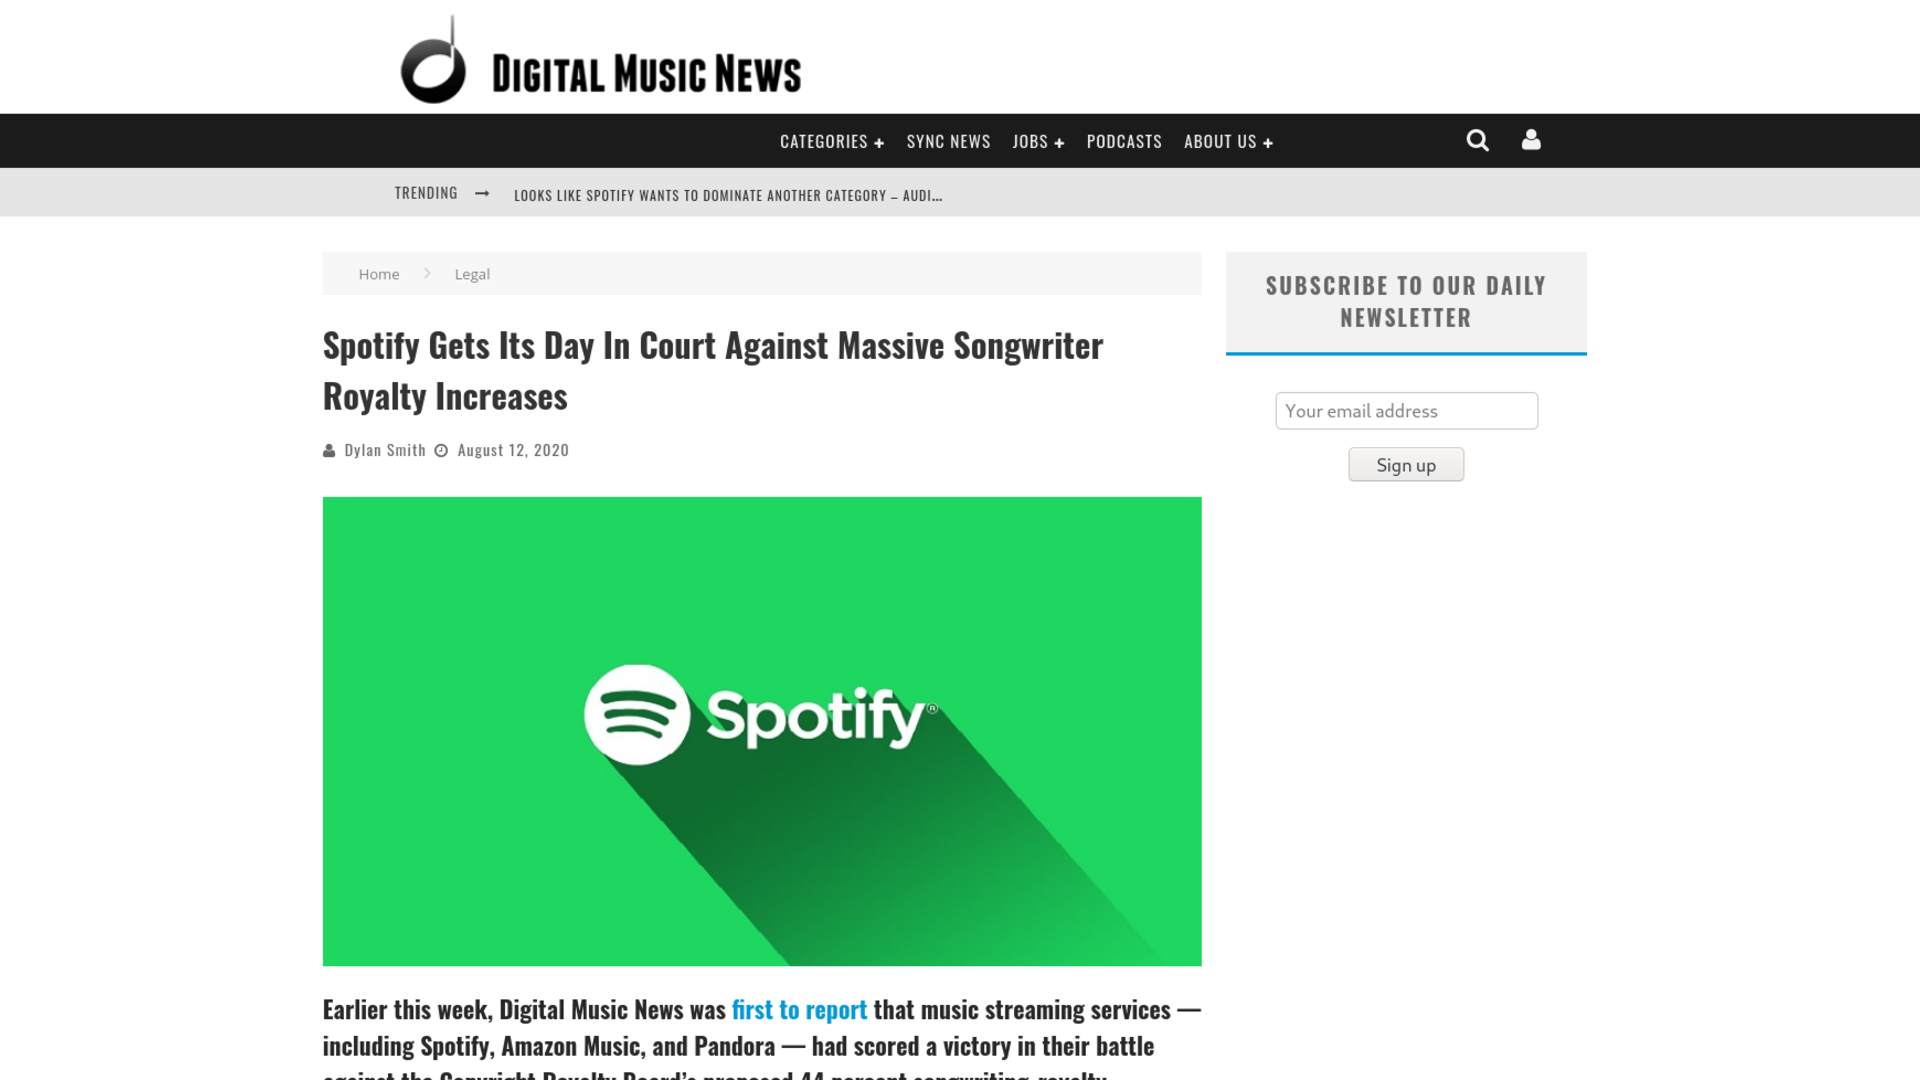 Fairness Rocks News Spotify Gets Its Day In Court Against Massive Songwriter Royalty Increases